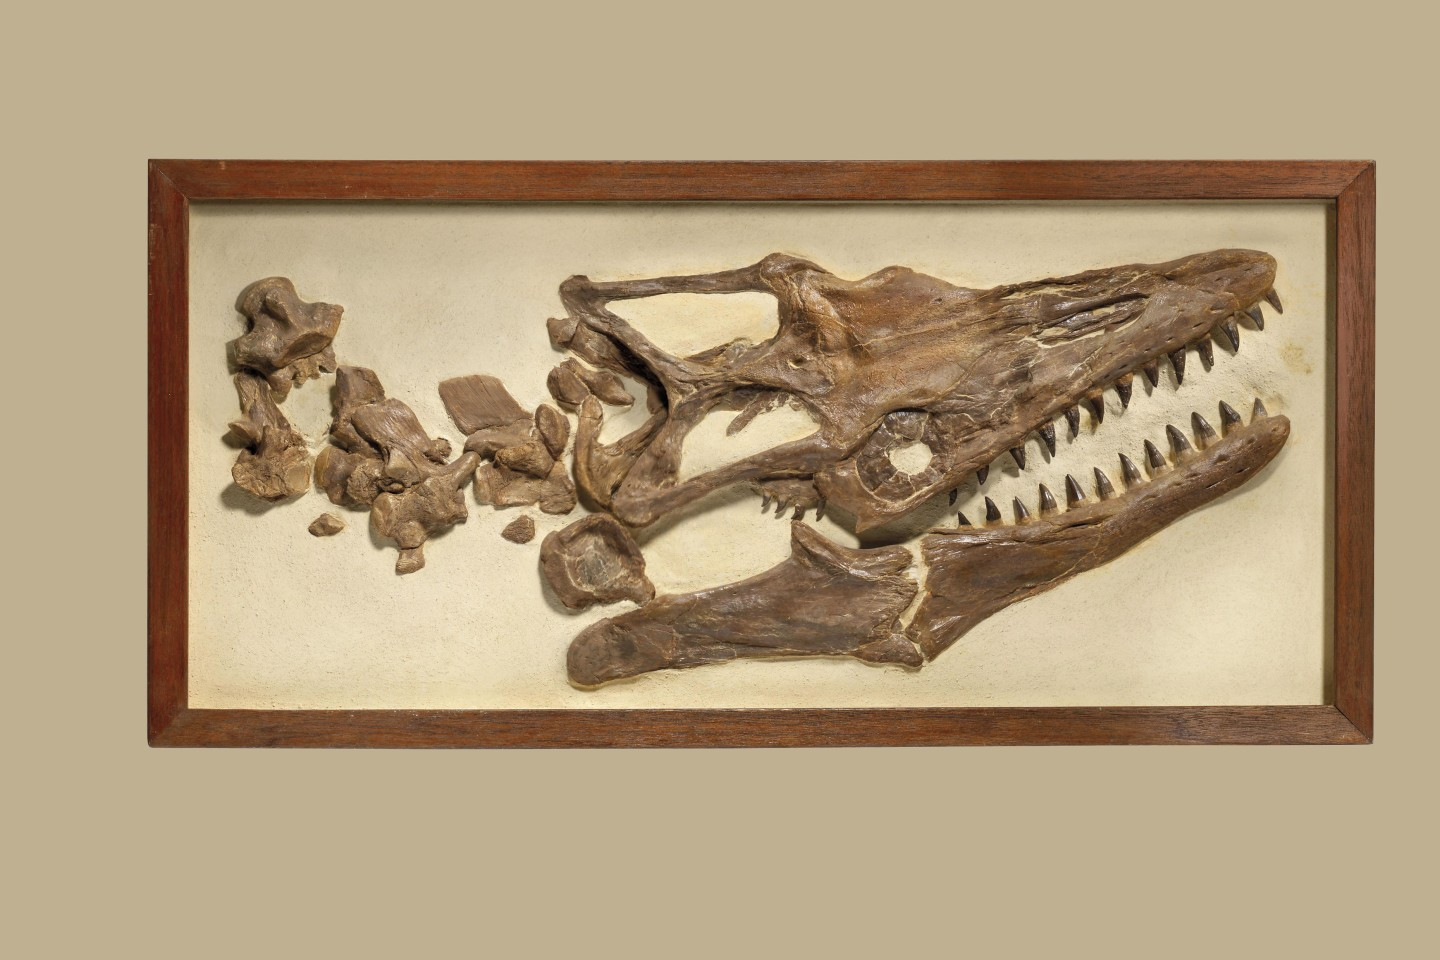 This 181⁄4 x 373⁄4 x 3 inch (46.5 x 96 x 8 cm) framed Mosasaur skull and neck vertebrae is from the Niobrara Formation in Kansas, USA. The Mosasaur dates from the Late Cretaceous (87 to 82 million years ago) period and is set in plaster.